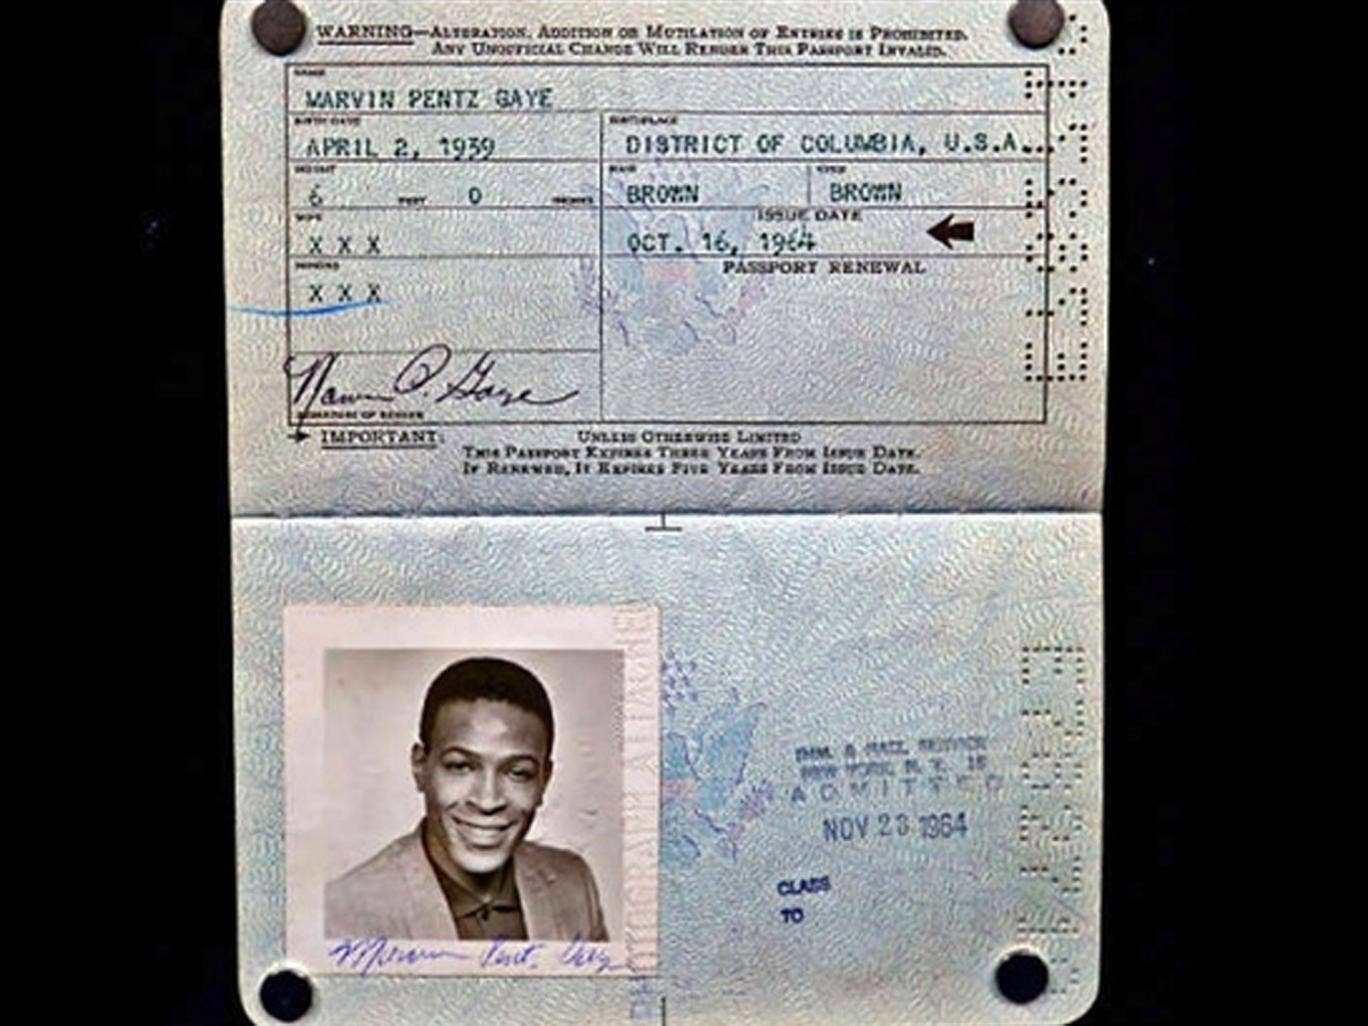 Marvin Gaye's 1964 passport was found hidden in a vinyl by a Detroit music fan